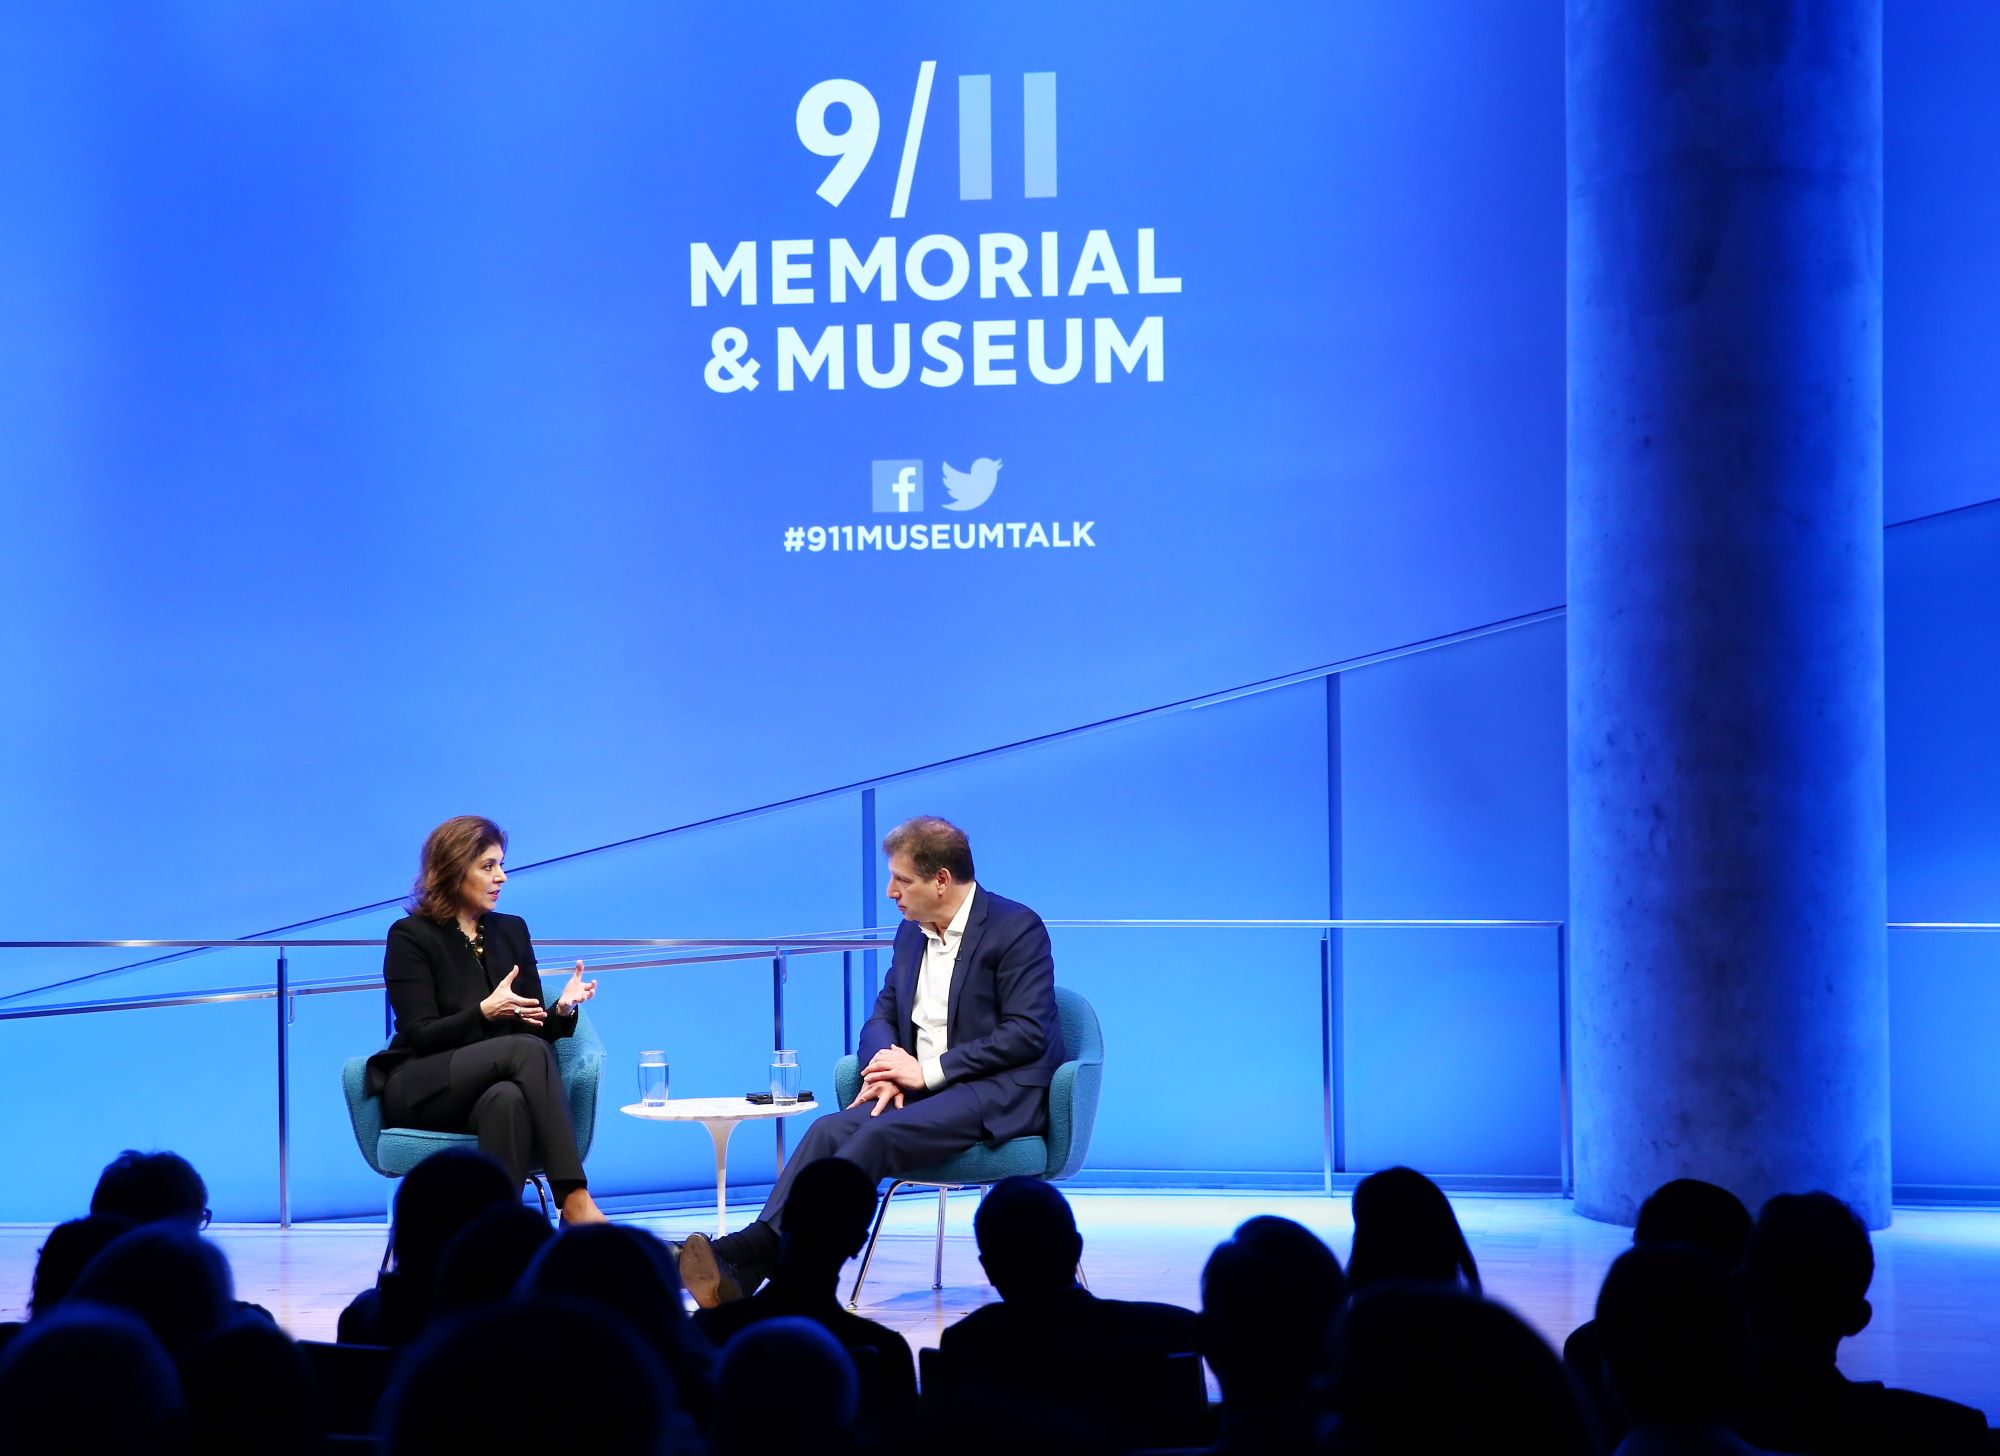 Author Farah Pandith gestures as she speaks with Foreign Affairs editor Gideon Rose onstage at the Museum auditorium. The silhouettes of audience members are visible in the foreground. The stage is lit up blue and white and the logo for the 9/11 Memorial & Museum is projected above Pandith and Rose. Audience members are silhouetted in the foreground.